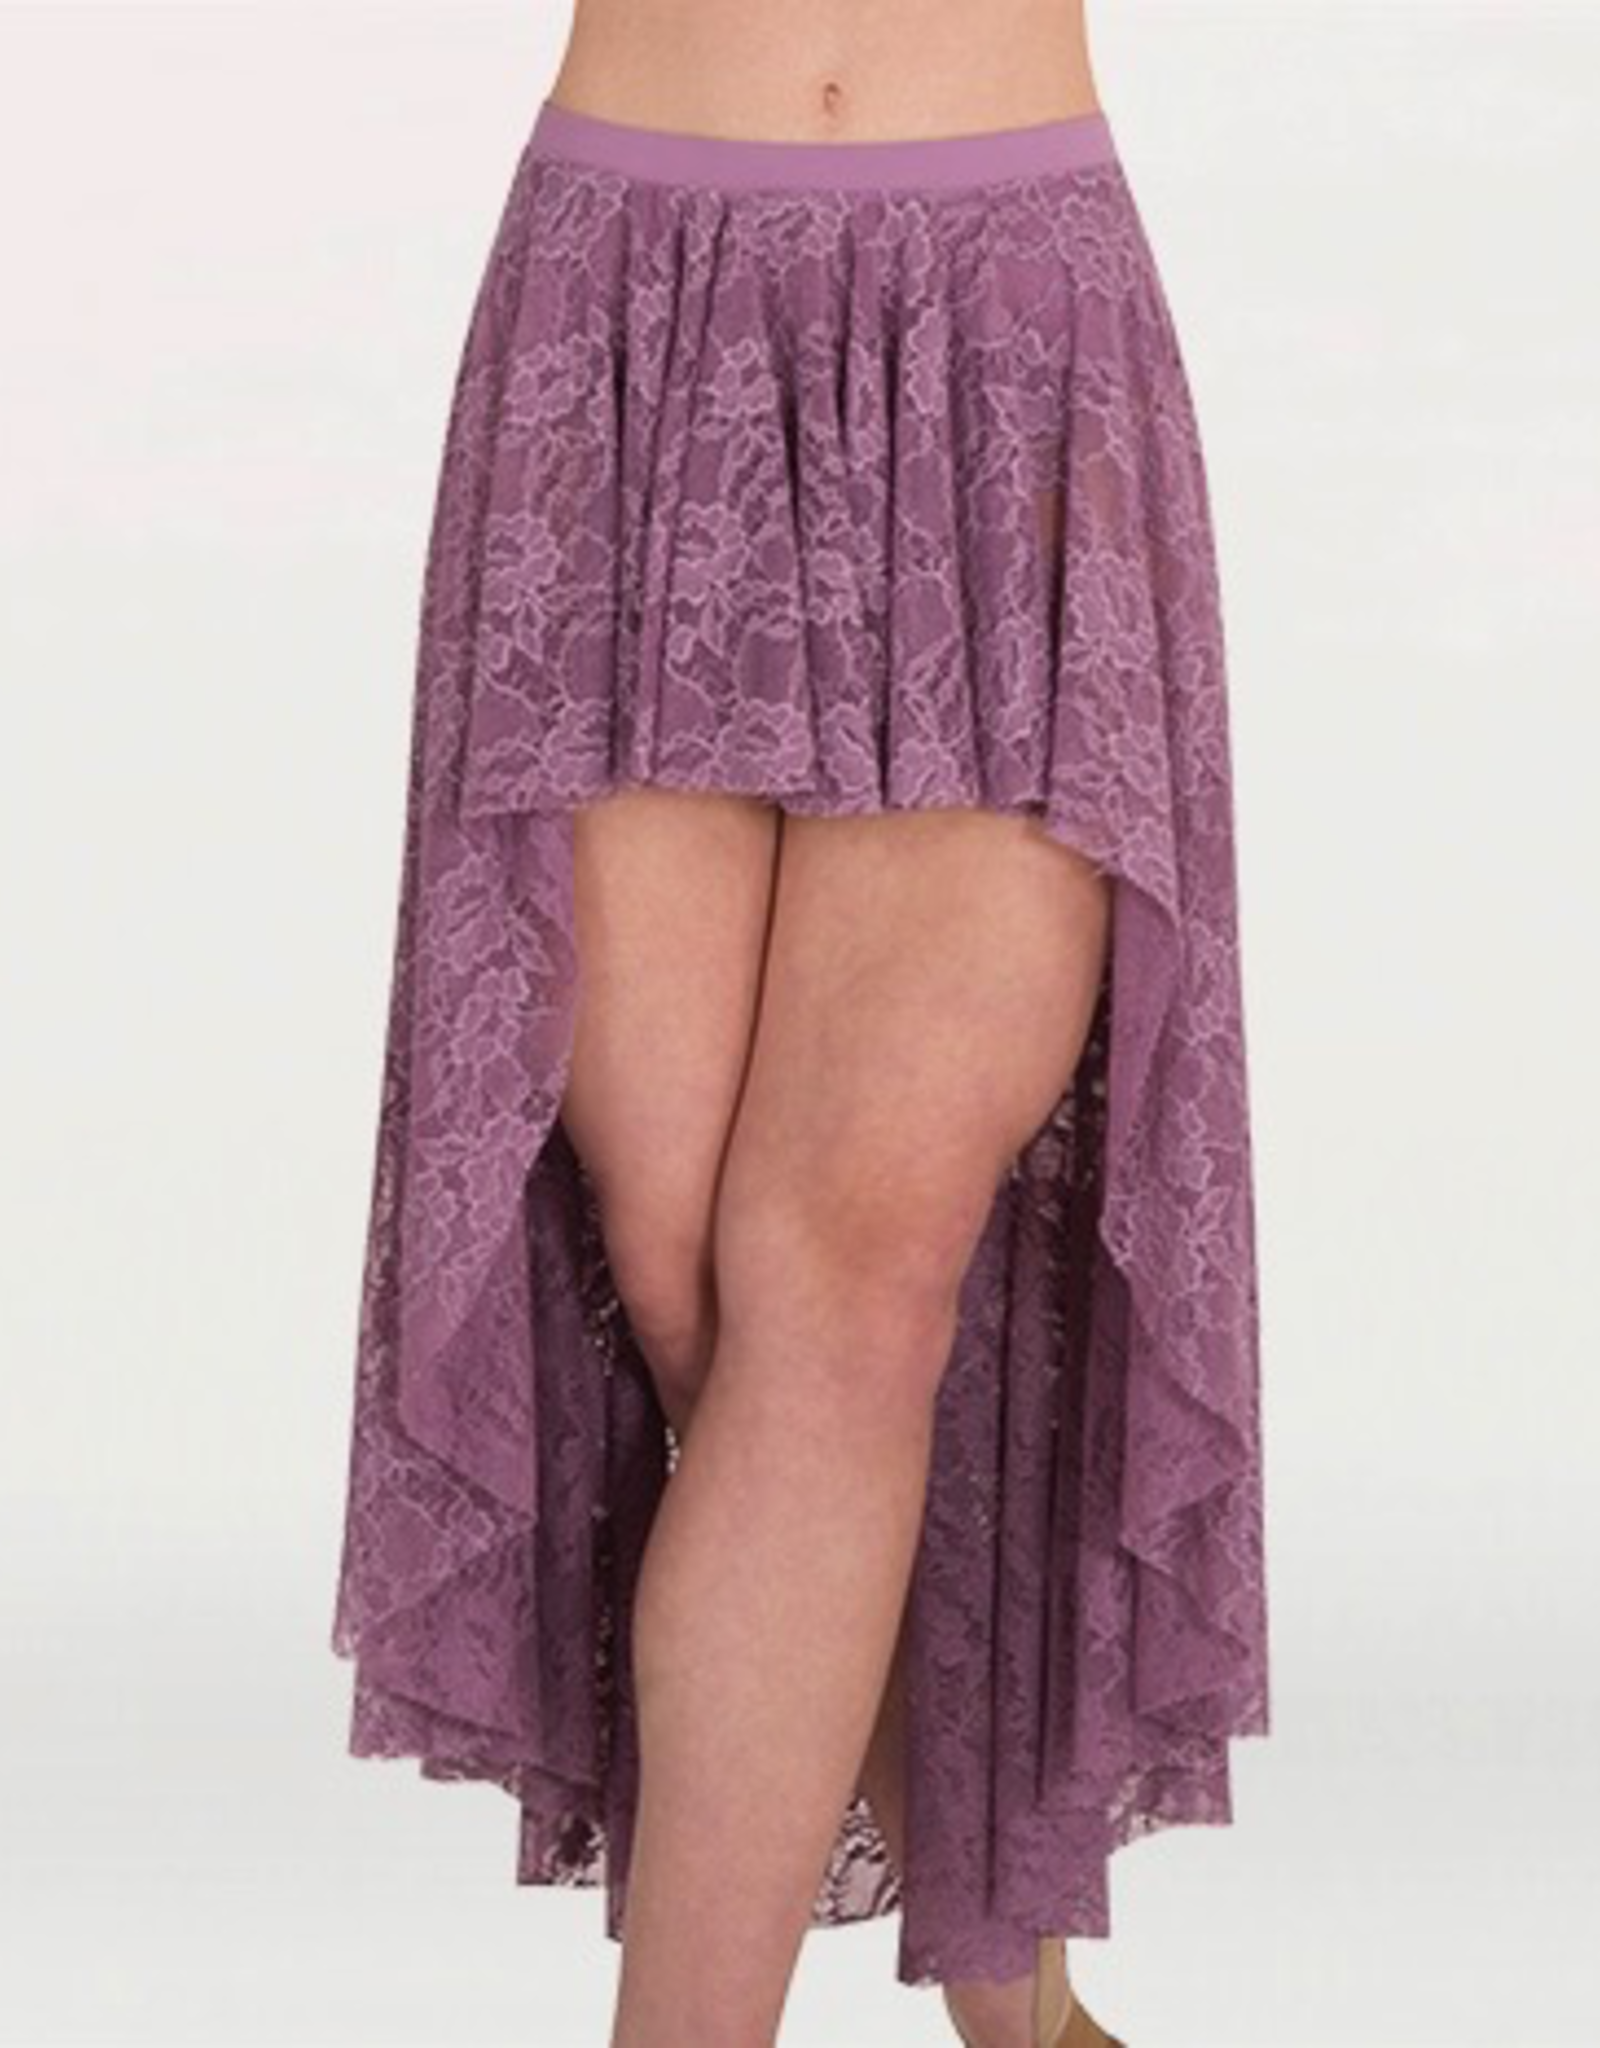 Bodywrappers High Lo Lace Skirt